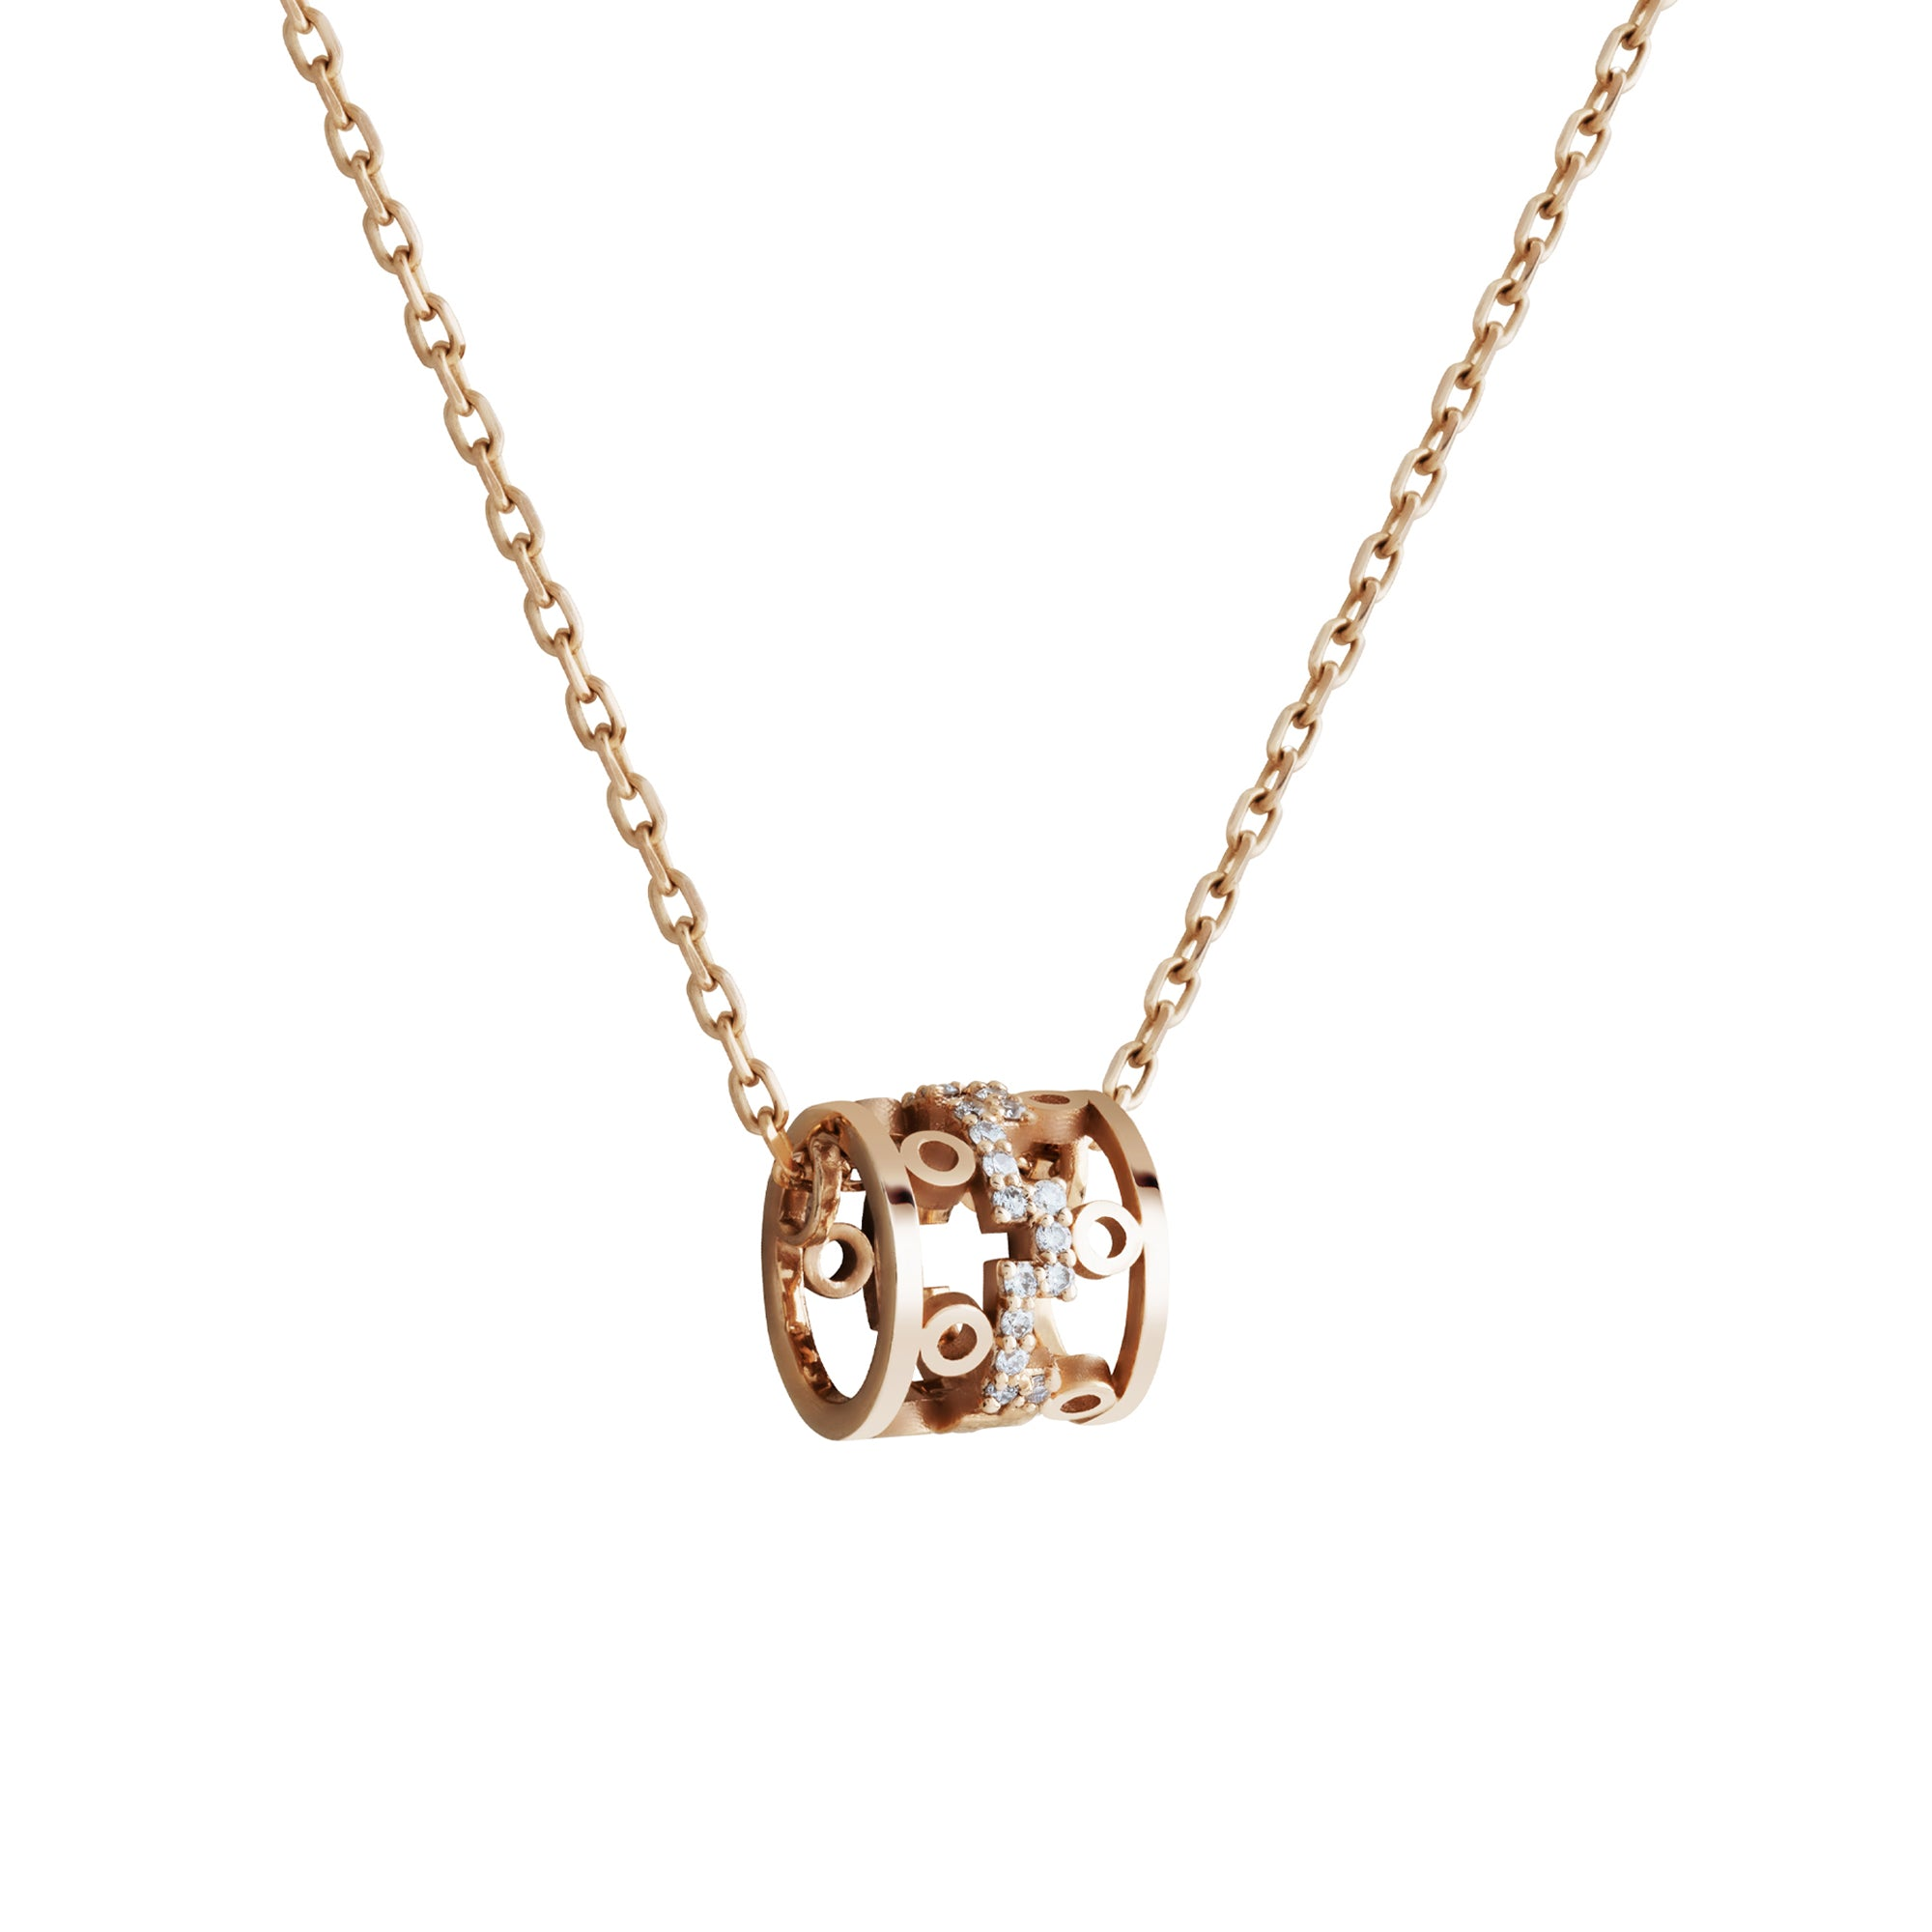 Dedalo 2020 Rose Gold Necklace With Diamonds